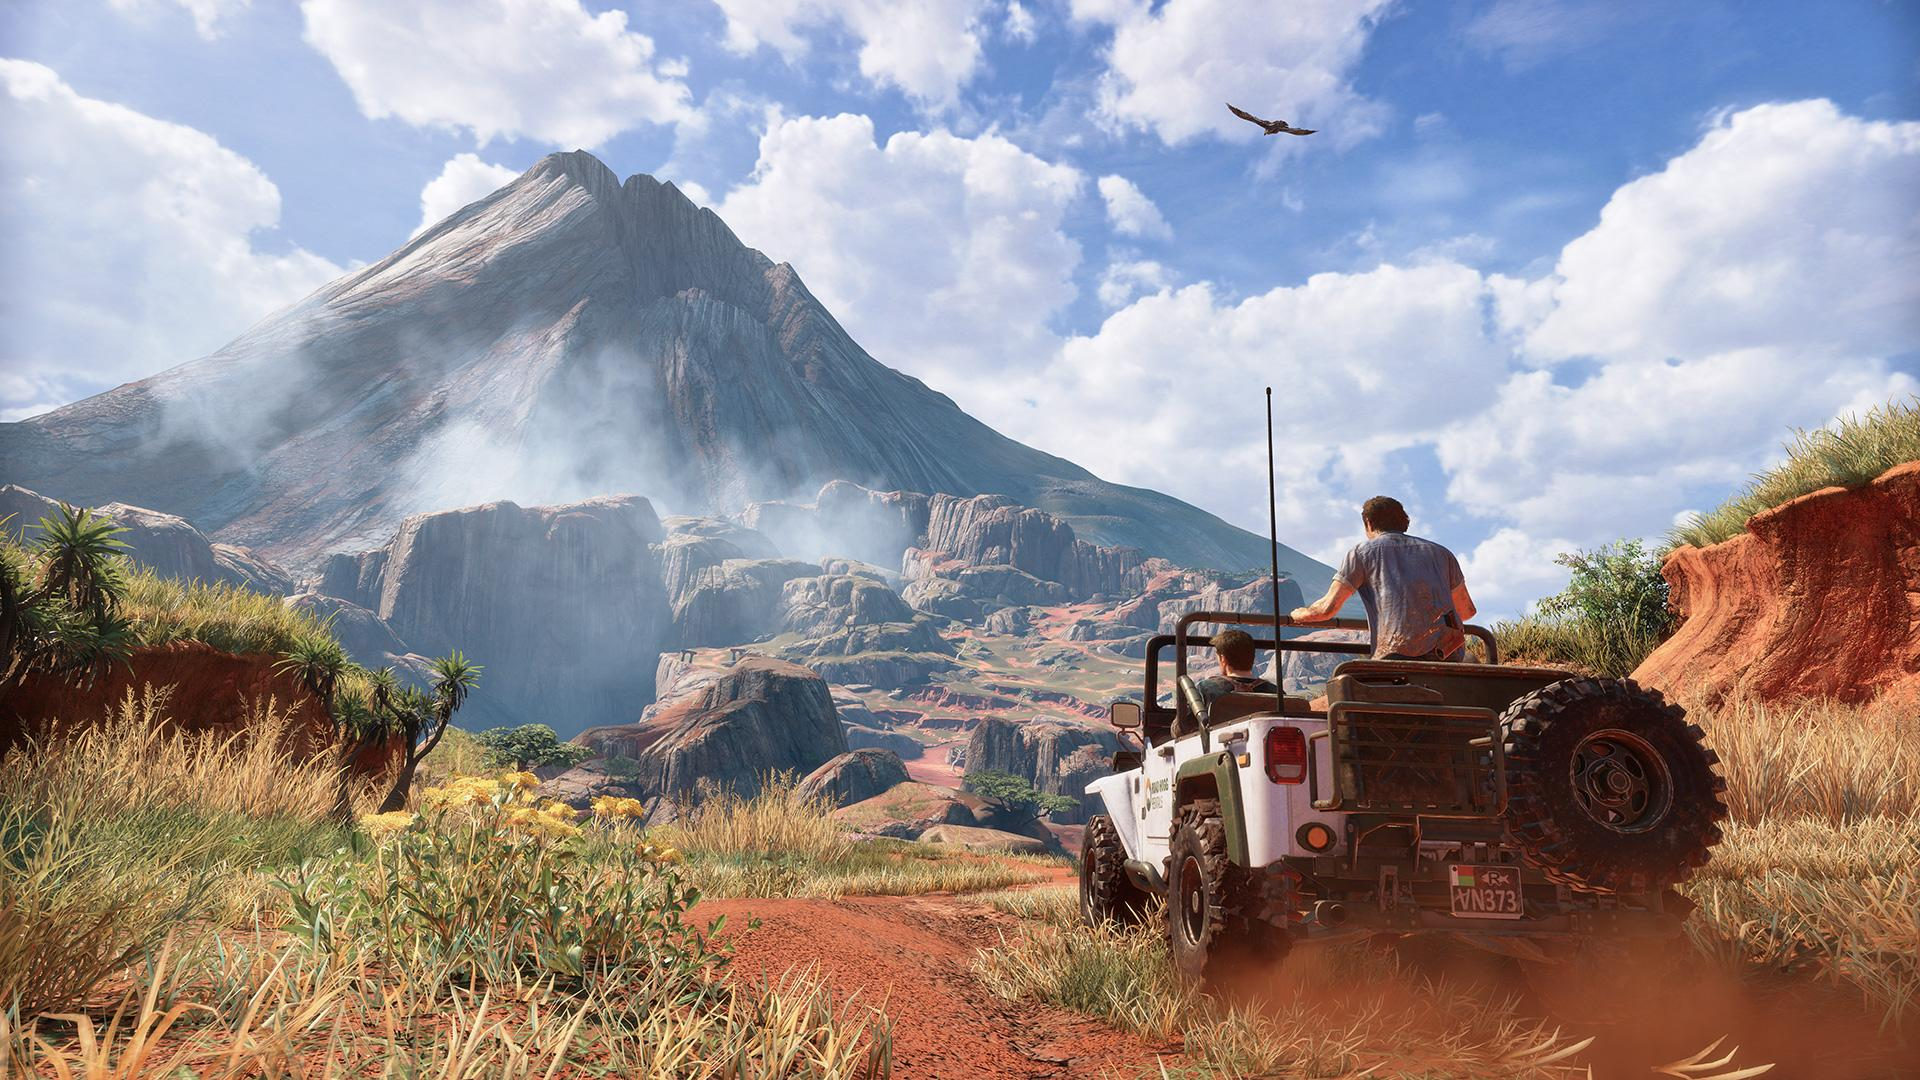 uncharted 4 to the weenie